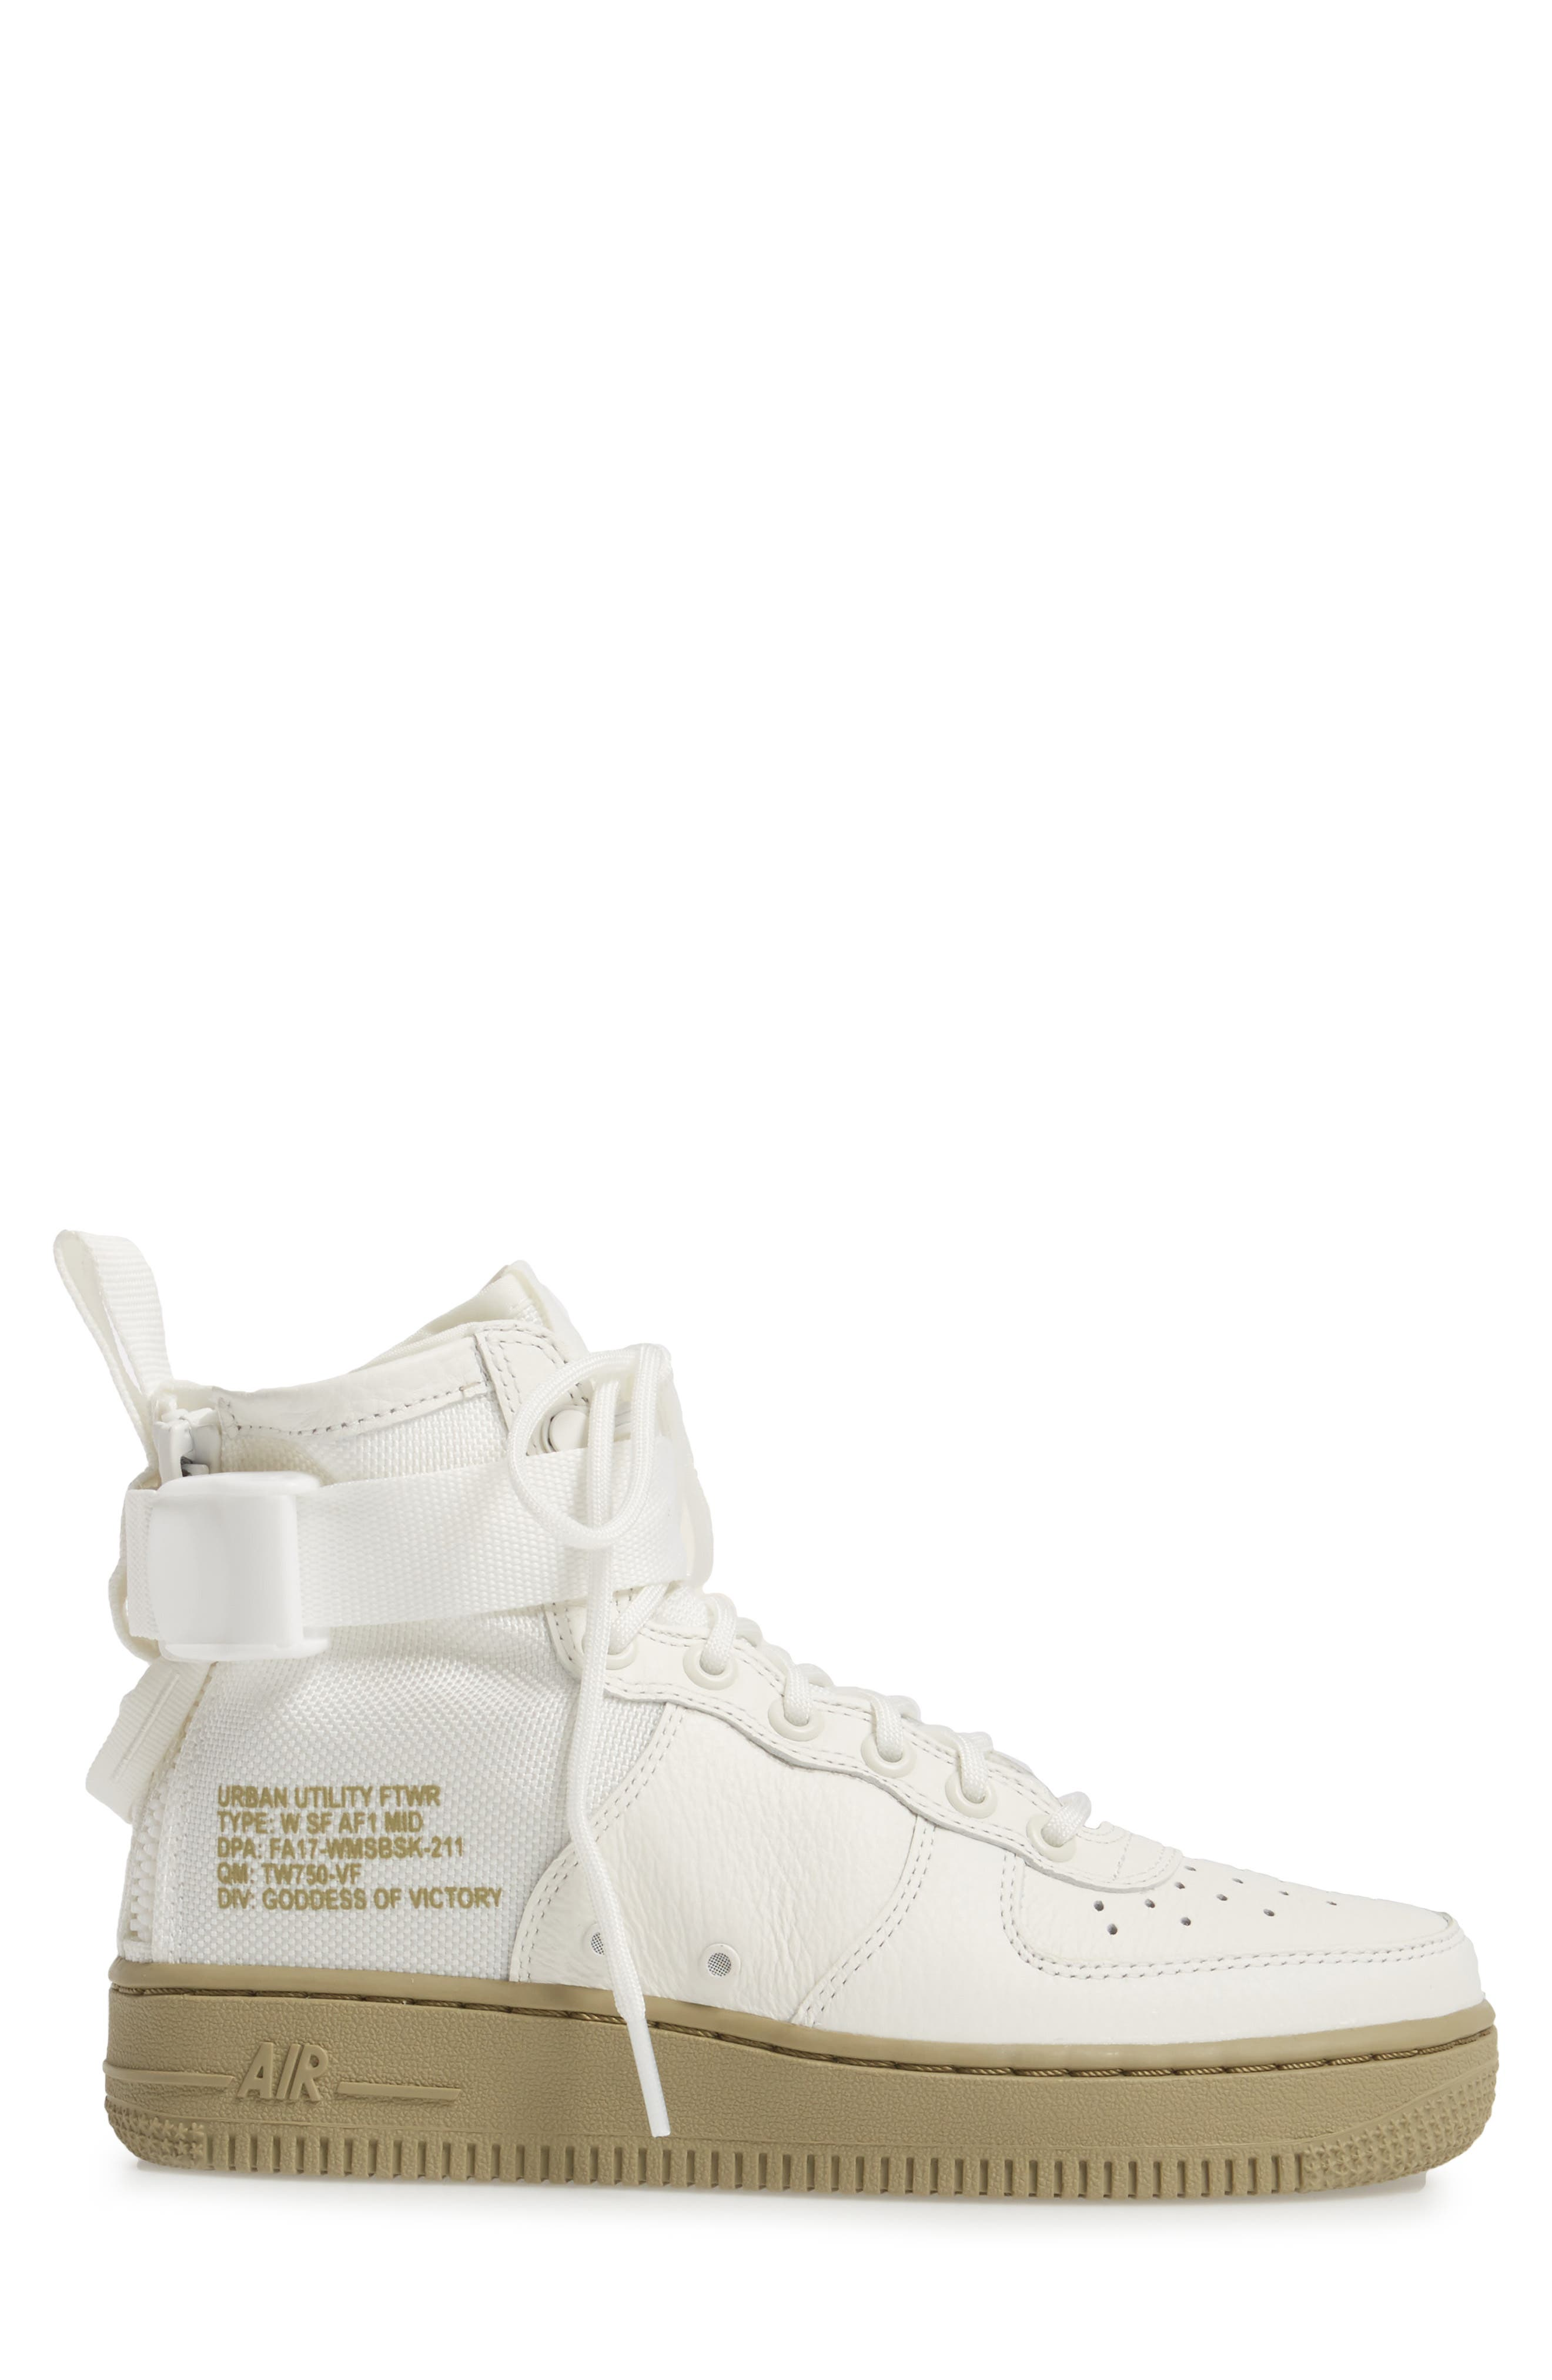 SF Air Force 1 Mid Sneaker,                             Alternate thumbnail 3, color,                             IVORY/IVORY-MARS STONE